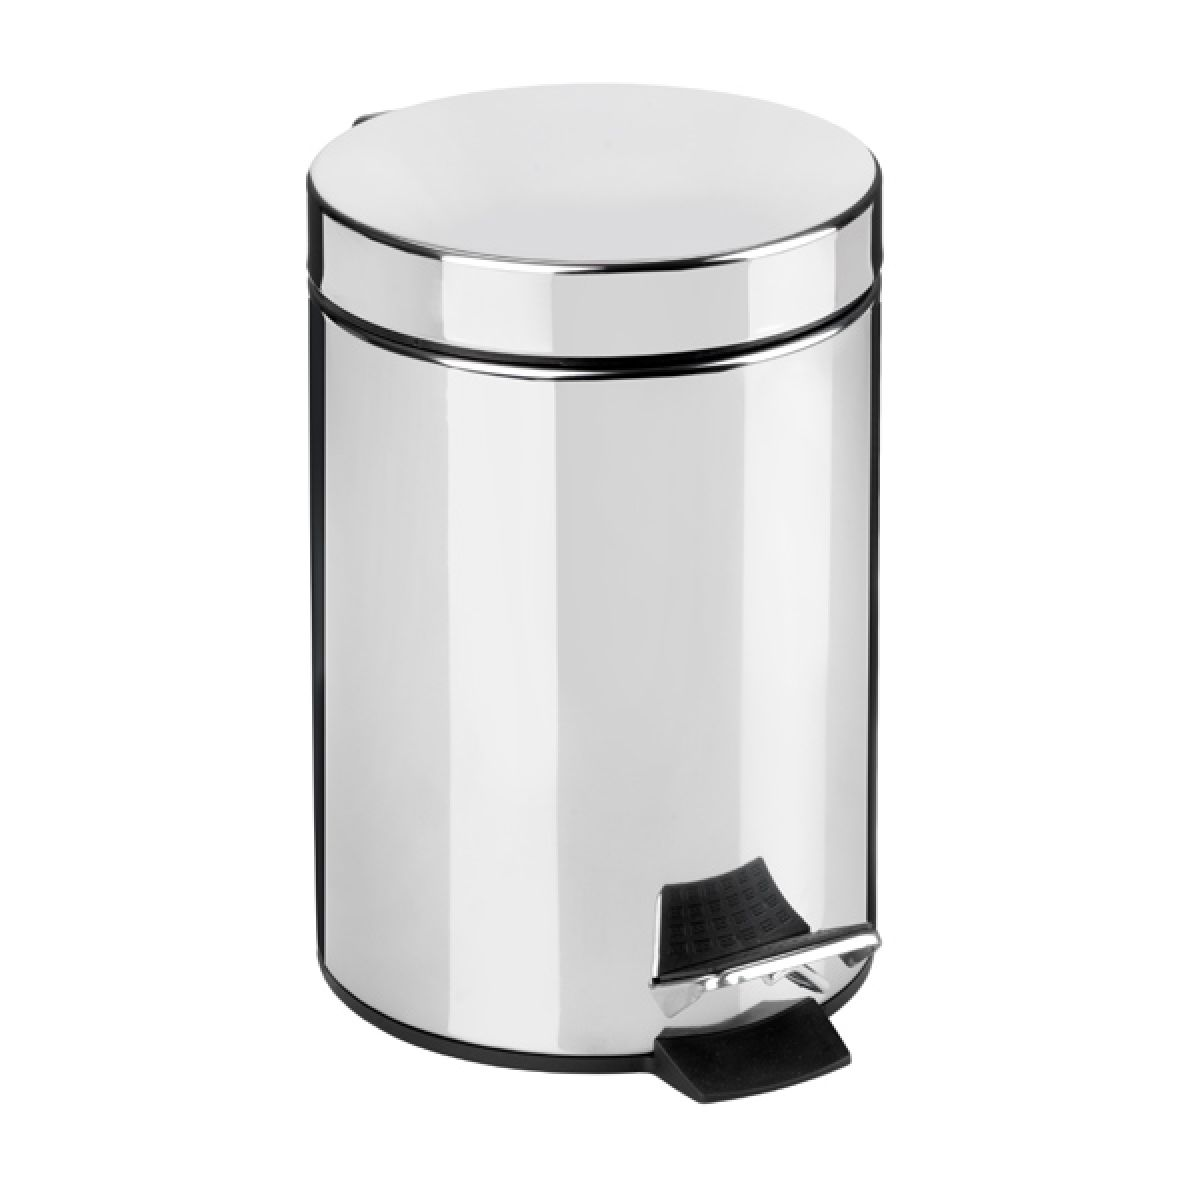 Croydex 3 Litre Soft Close Peddle Bin